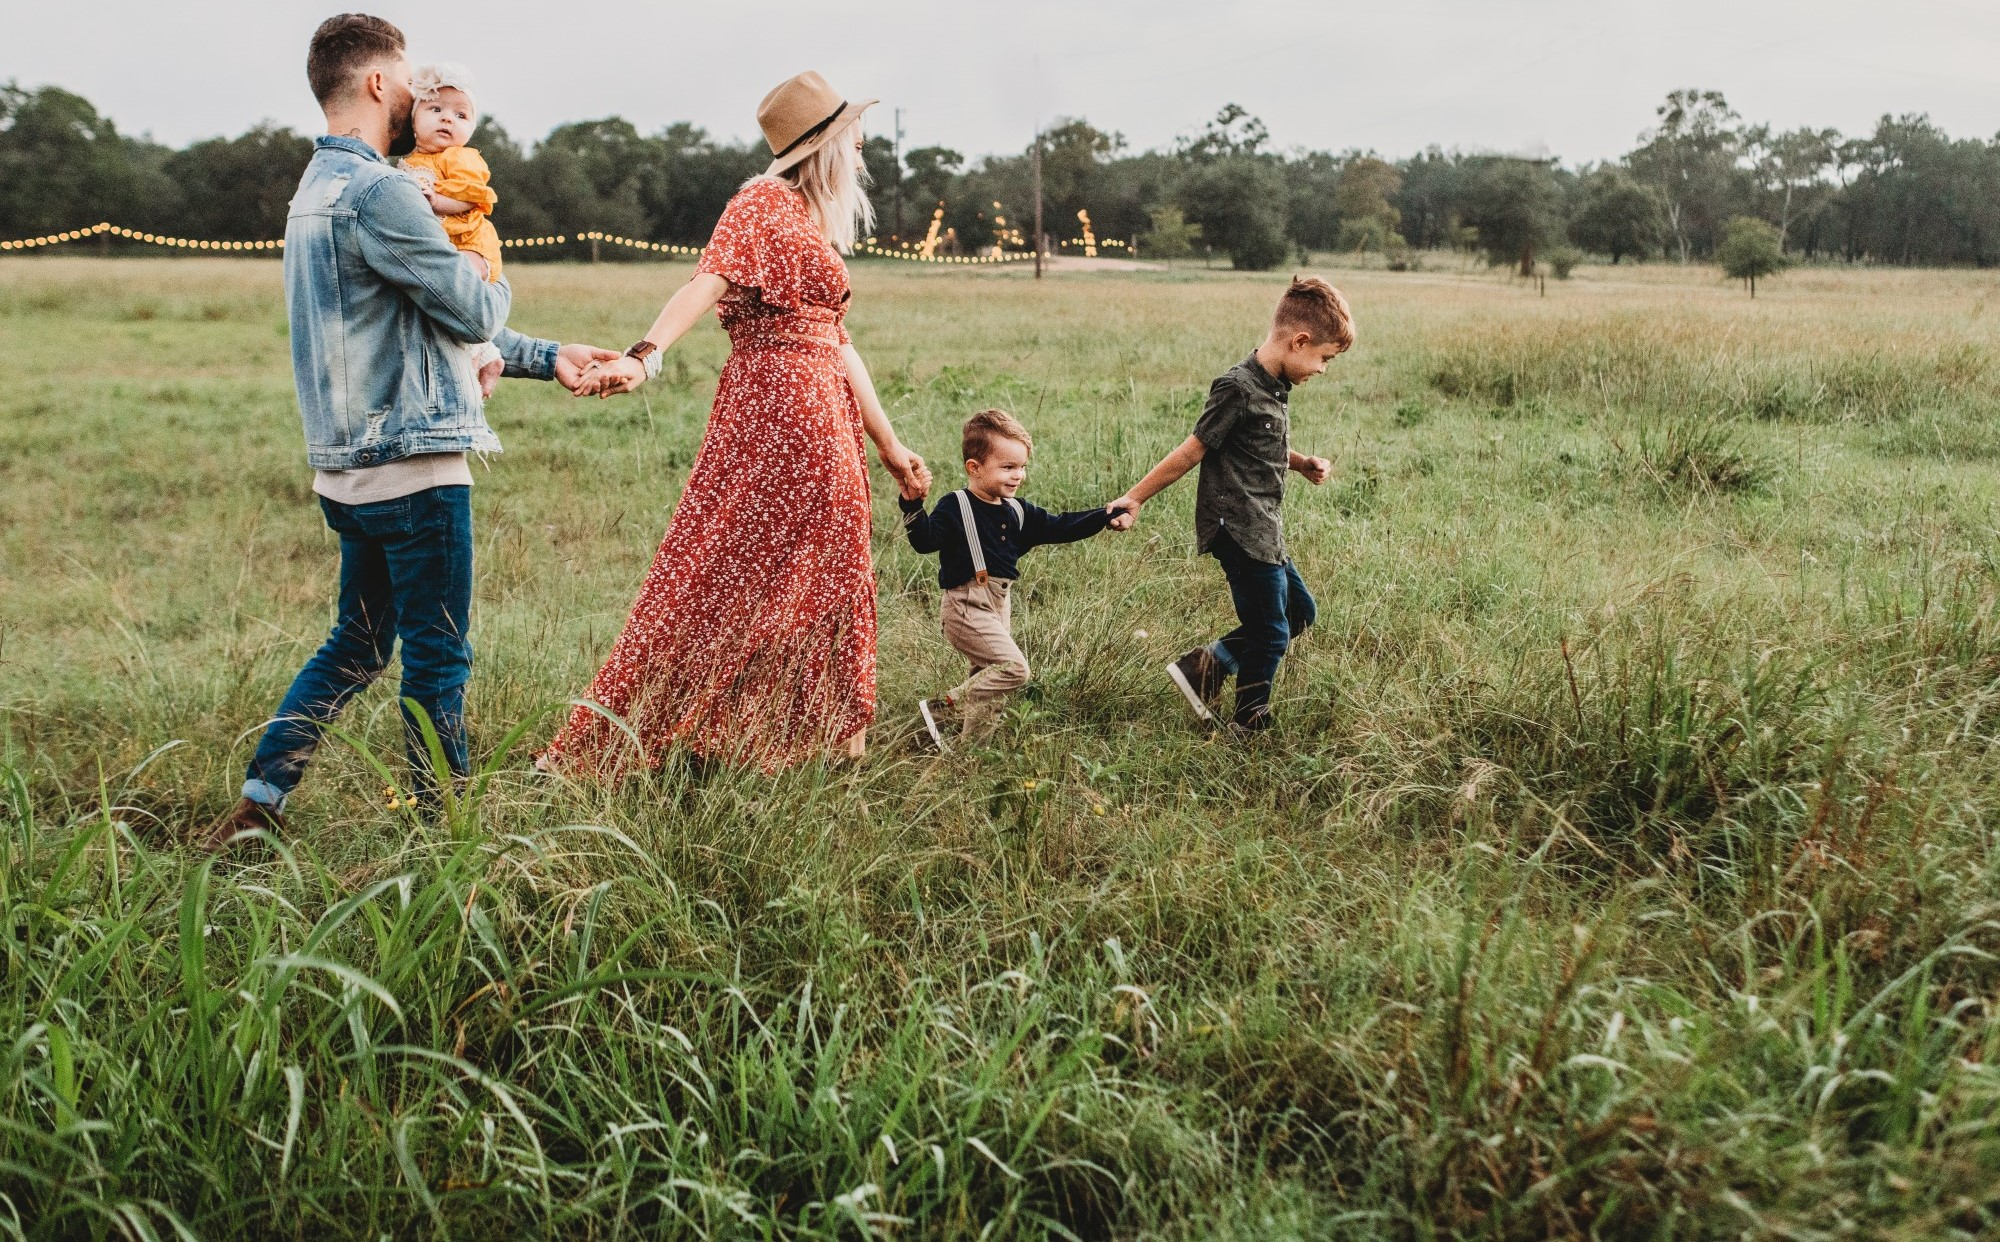 Photo of young parents walking with their 3 children through a field at daytime